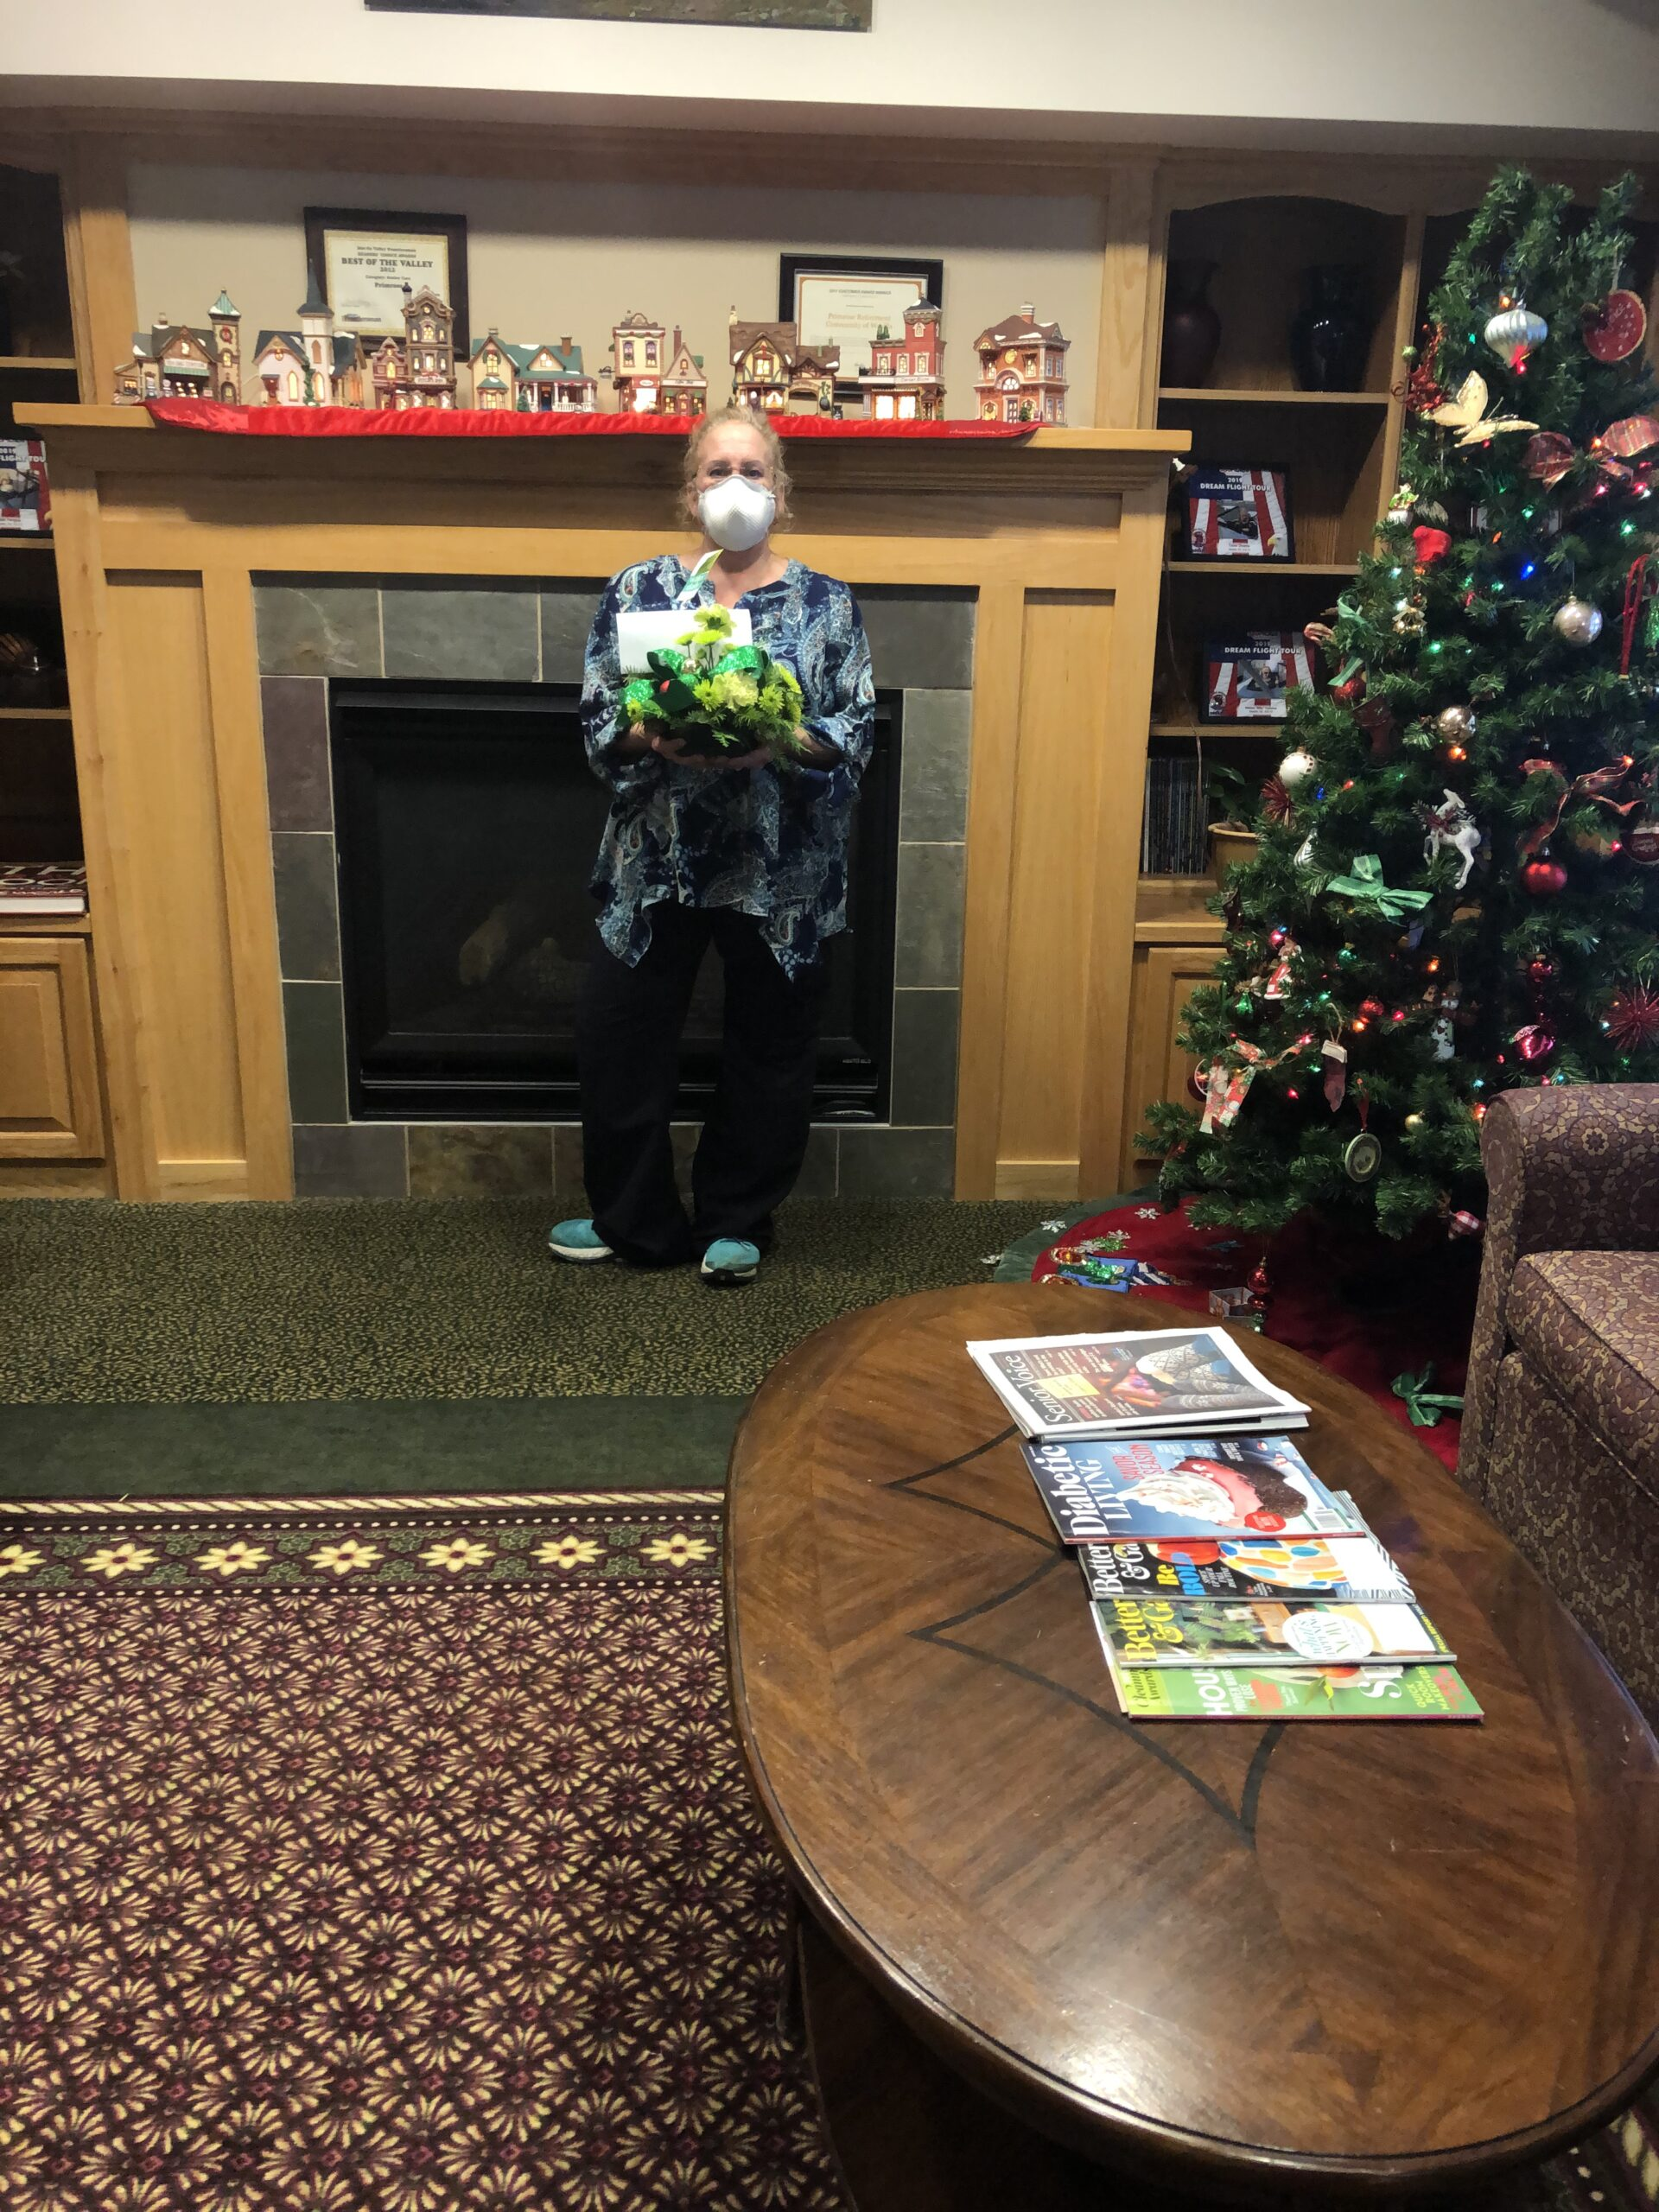 Every resident received fresh flowers from a local florist at Christmas